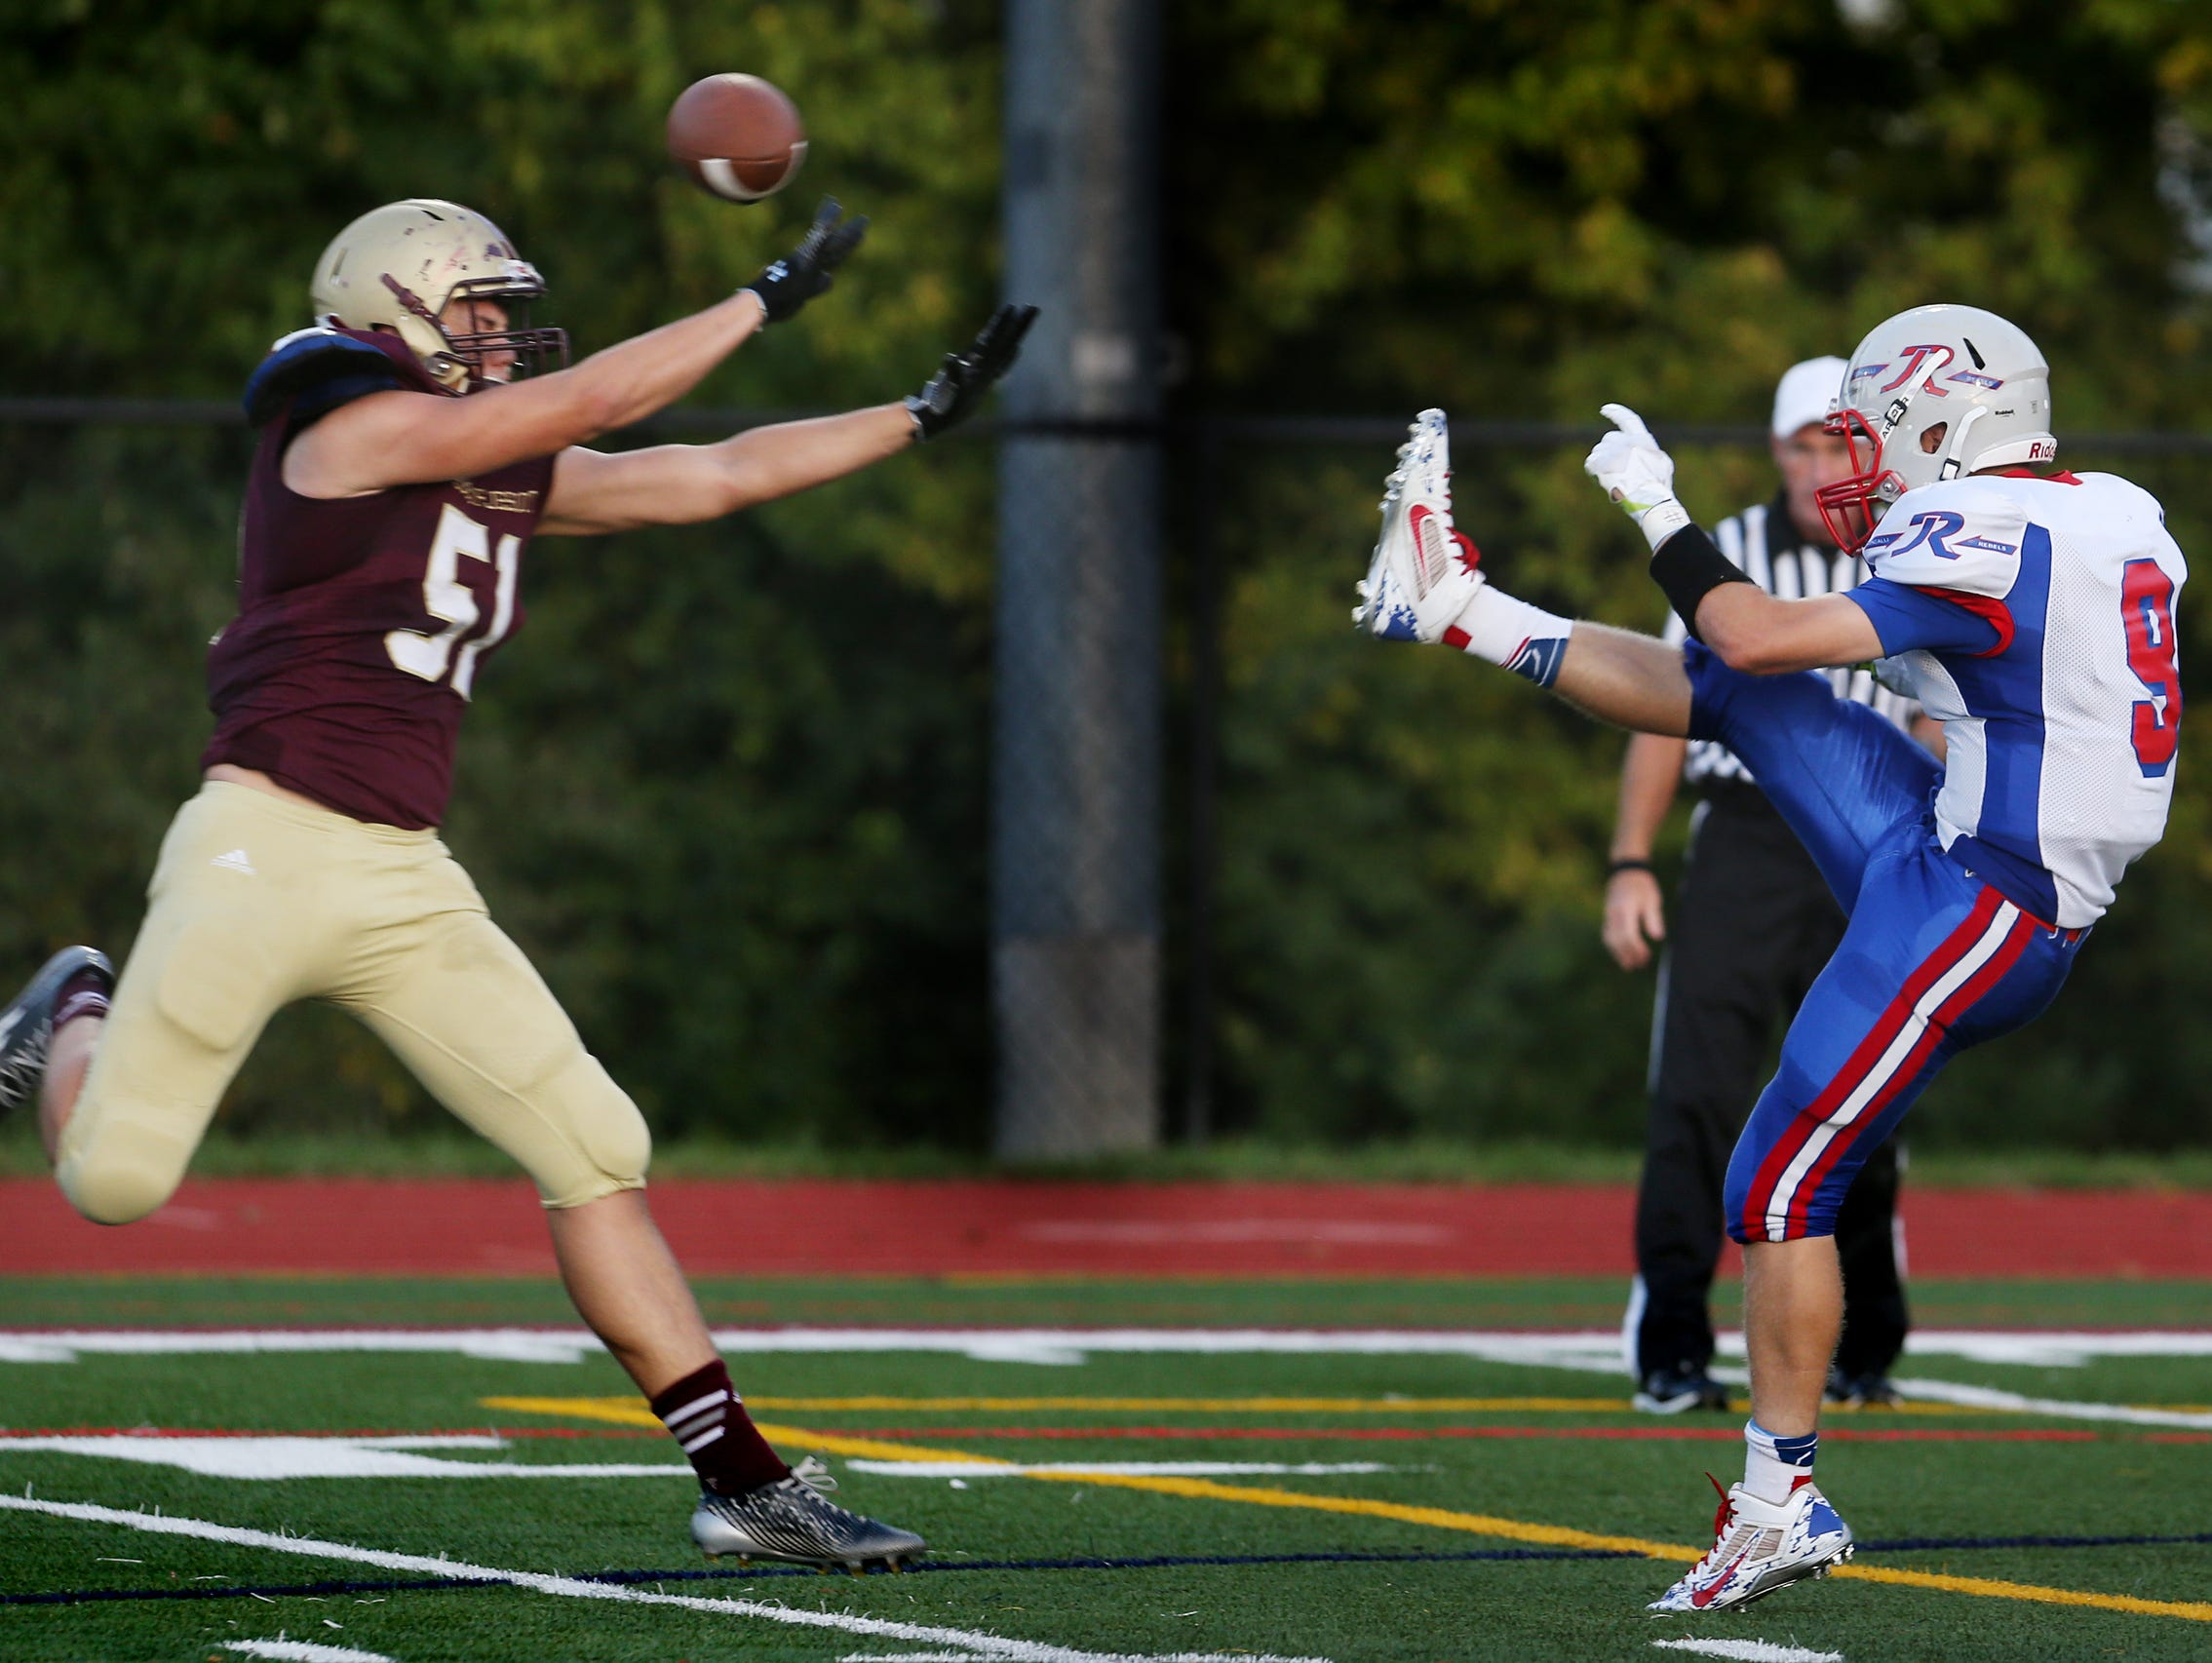 Brebeuf Braves' DL Gerard Carthy blocks a punt by Roncalli's Robbie Strader deep in Rebel territory, after which teammate Ethan Beatty fell on the ball in the end zone for the game's first score at Brebeuf, on Friday, September 26, 2014.